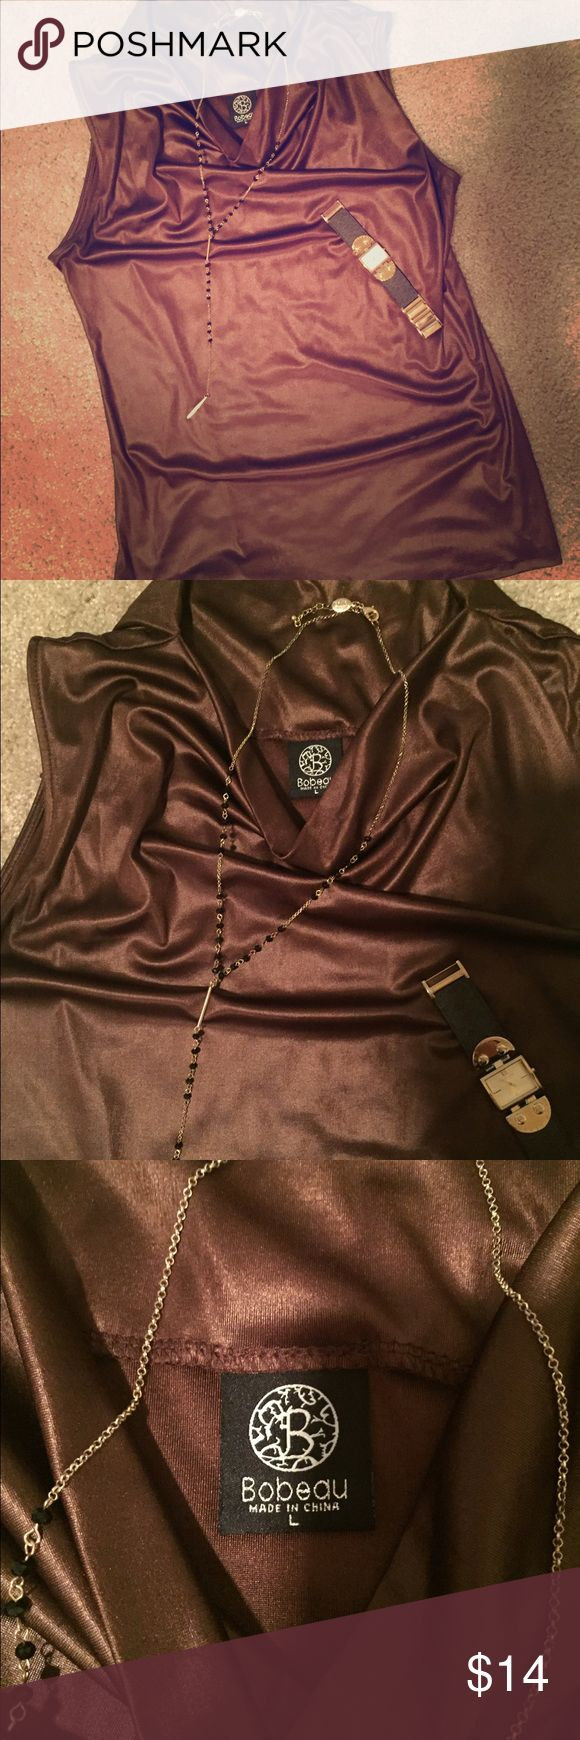 Brown Dressy Top Chocolate color satin-like top. Ladies size large. 92% polyester, 8% spandex. Very comfortable but nicely dresses up a pair of jeans or anything else. Only worn once. bobeau Tops Tank Tops